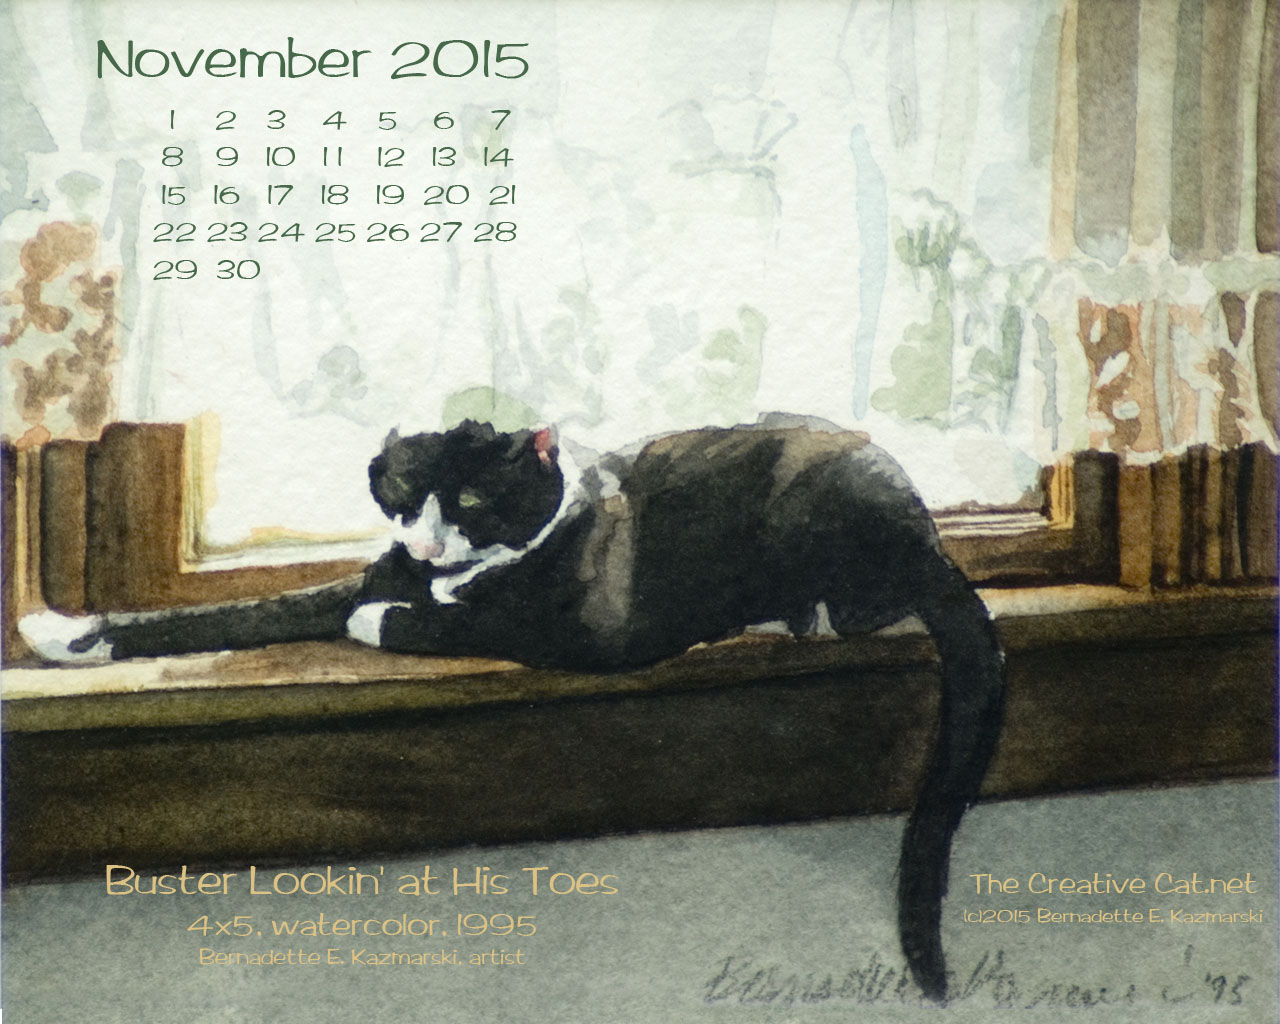 """Buster Lookin' at His Toes"" desktop calendar, 1280 x 1024 for square and laptop monitors."